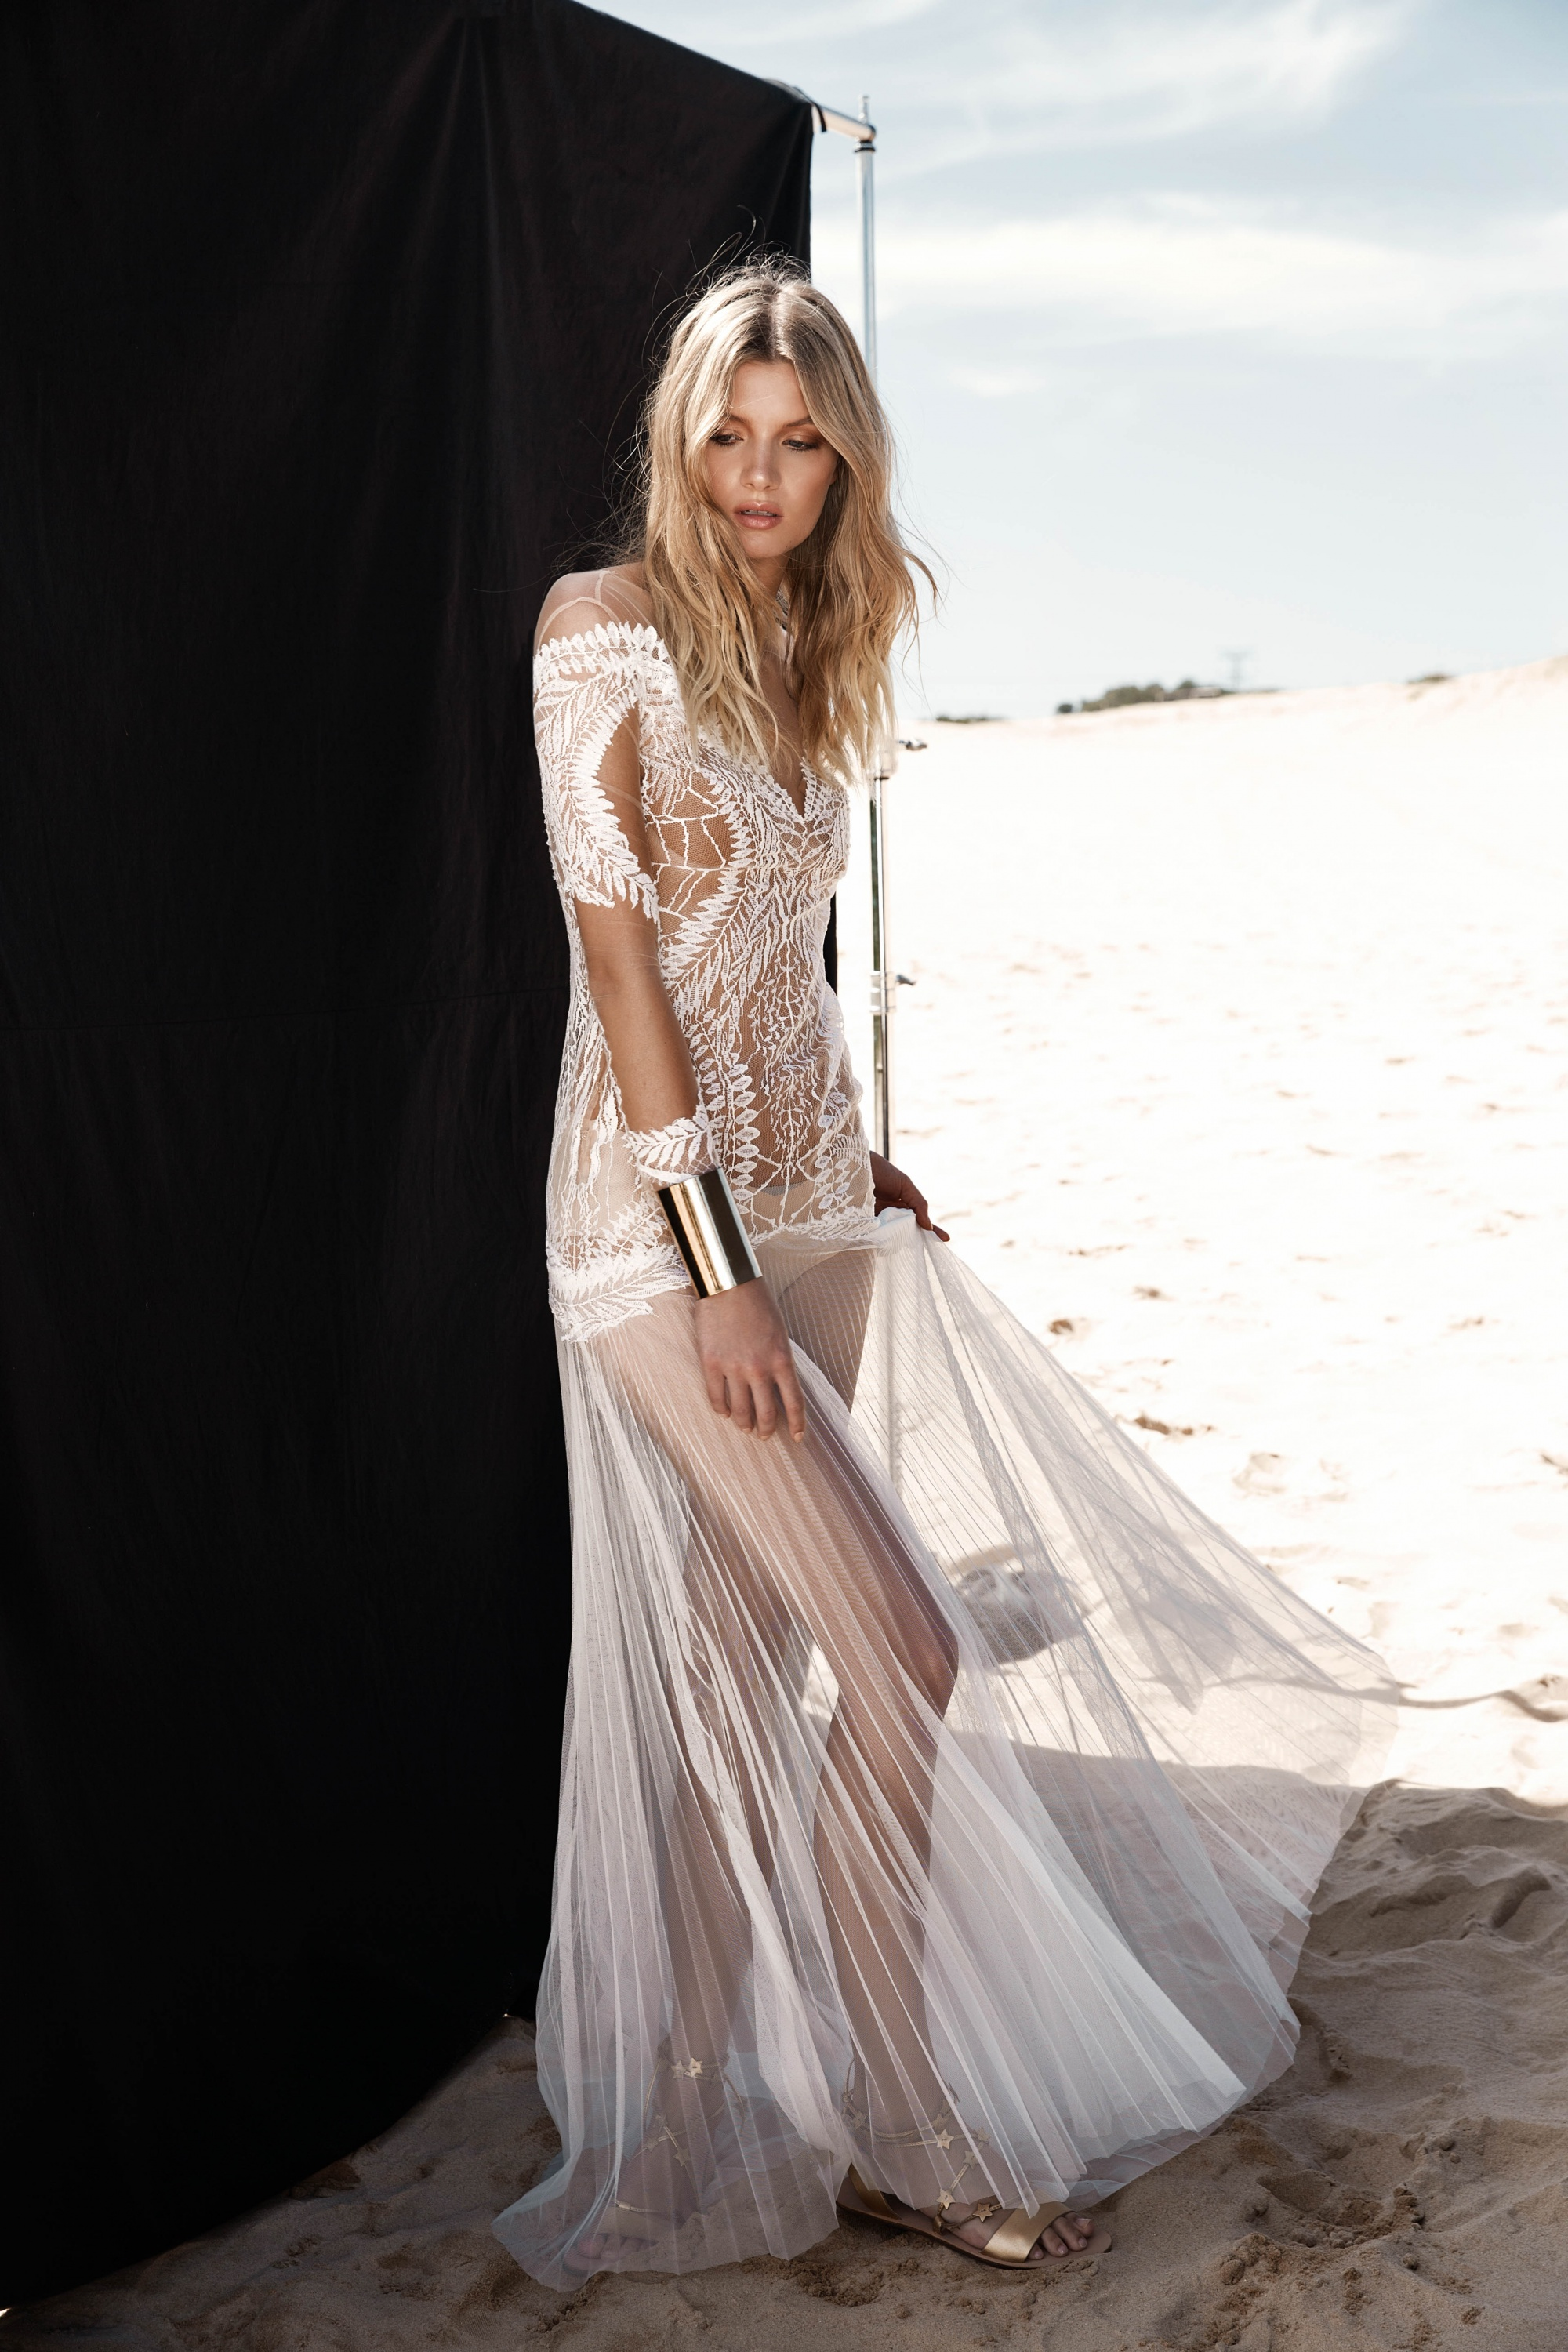 LOVE FIND CO. // ONE DAY BRIDAL 'Blessed Are The Curious' - Eden Gown